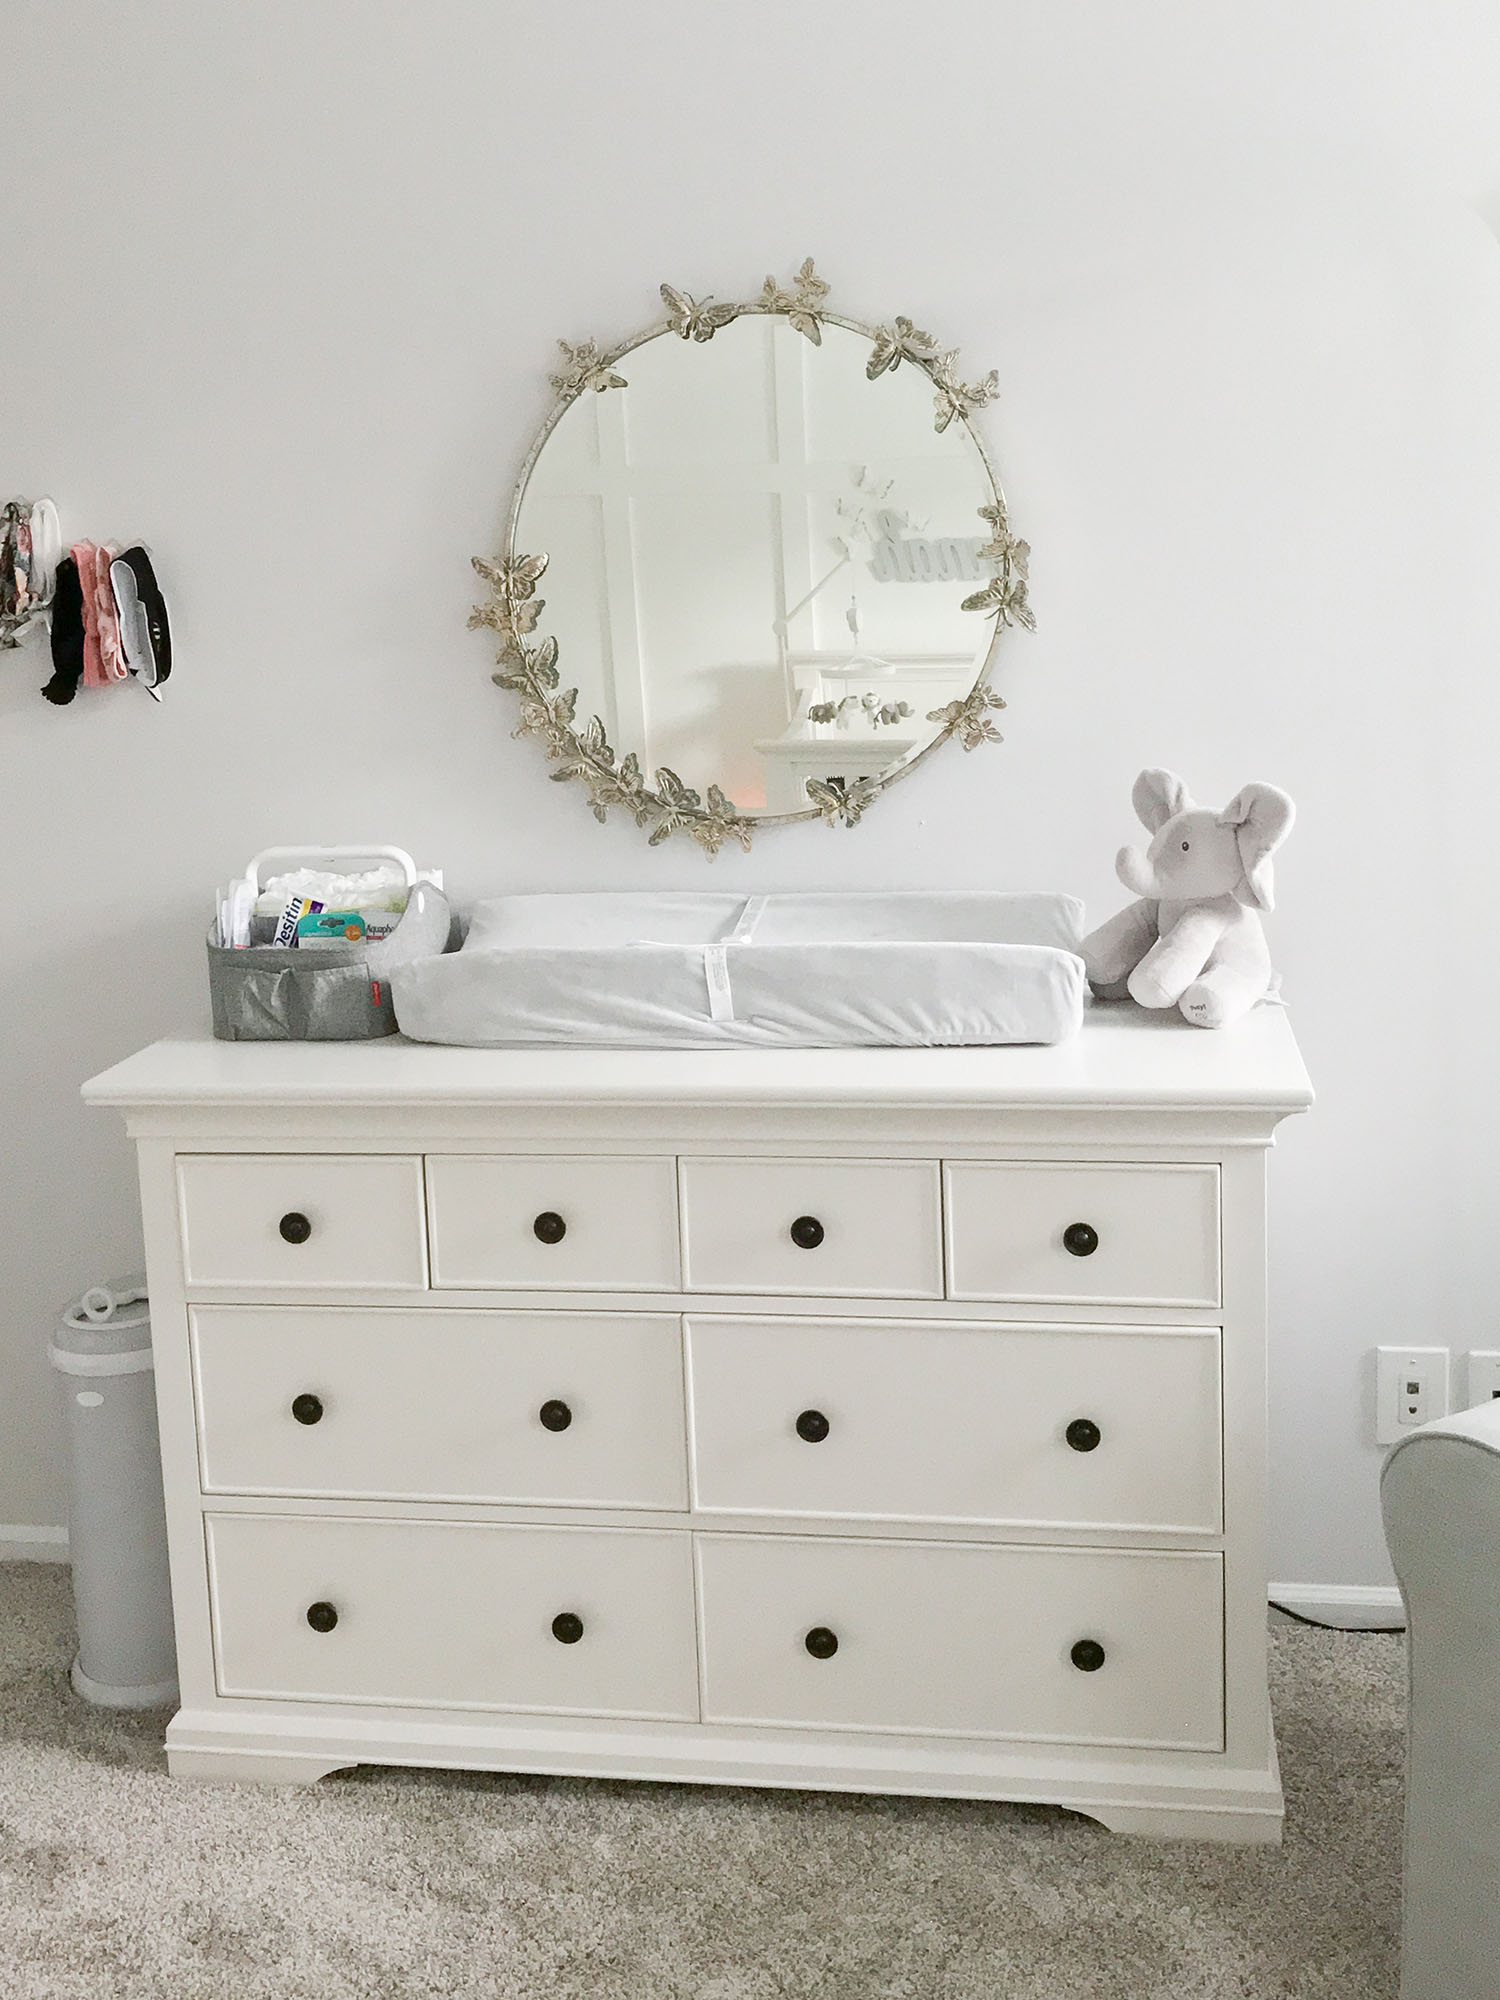 Lavender and Grey Baby Nursery Ideas | Pottery Barn Monique Lhuillier Butterfly Circle Mirror with Pottery Barn Larkin Extra Wide Dresser in Simply White | Baby Girl Nursery Ideas